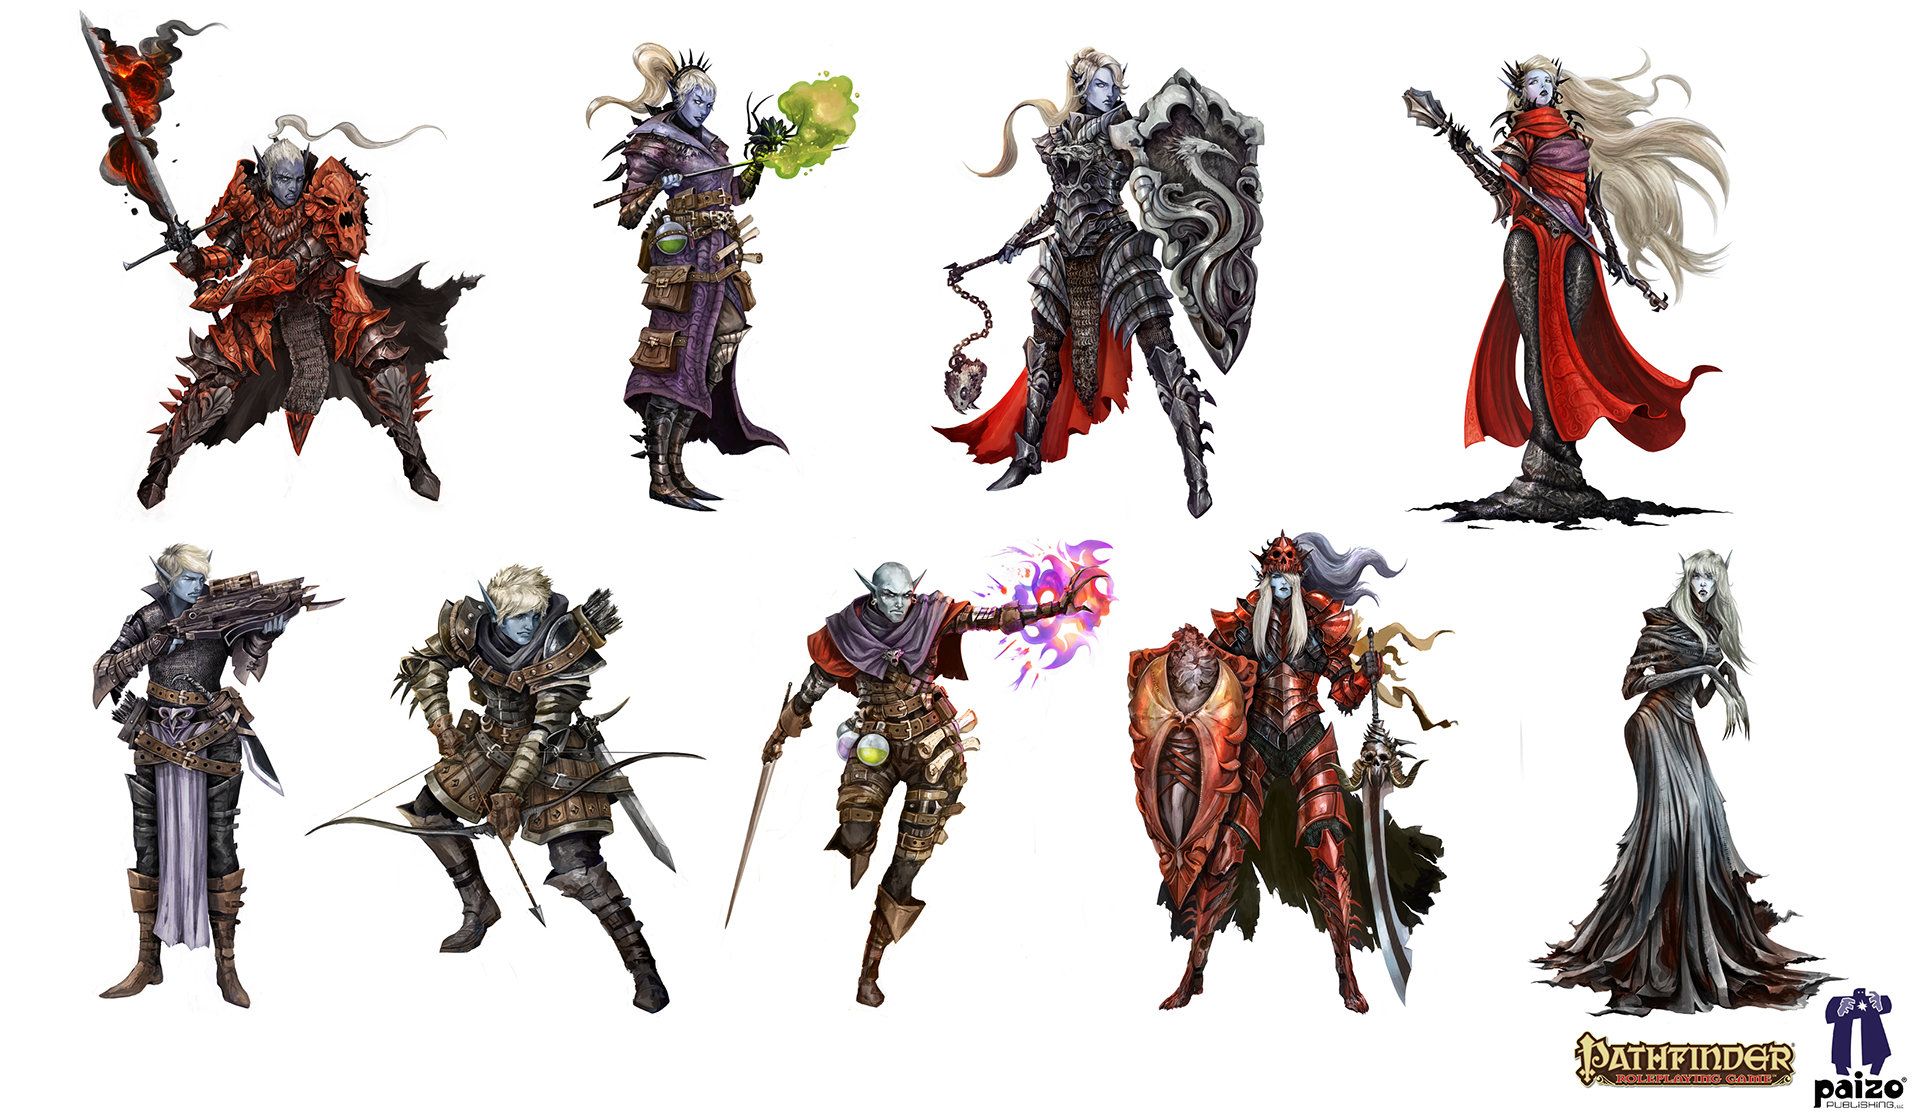 Alexandre chaudret lineup characters drow folio01jpg